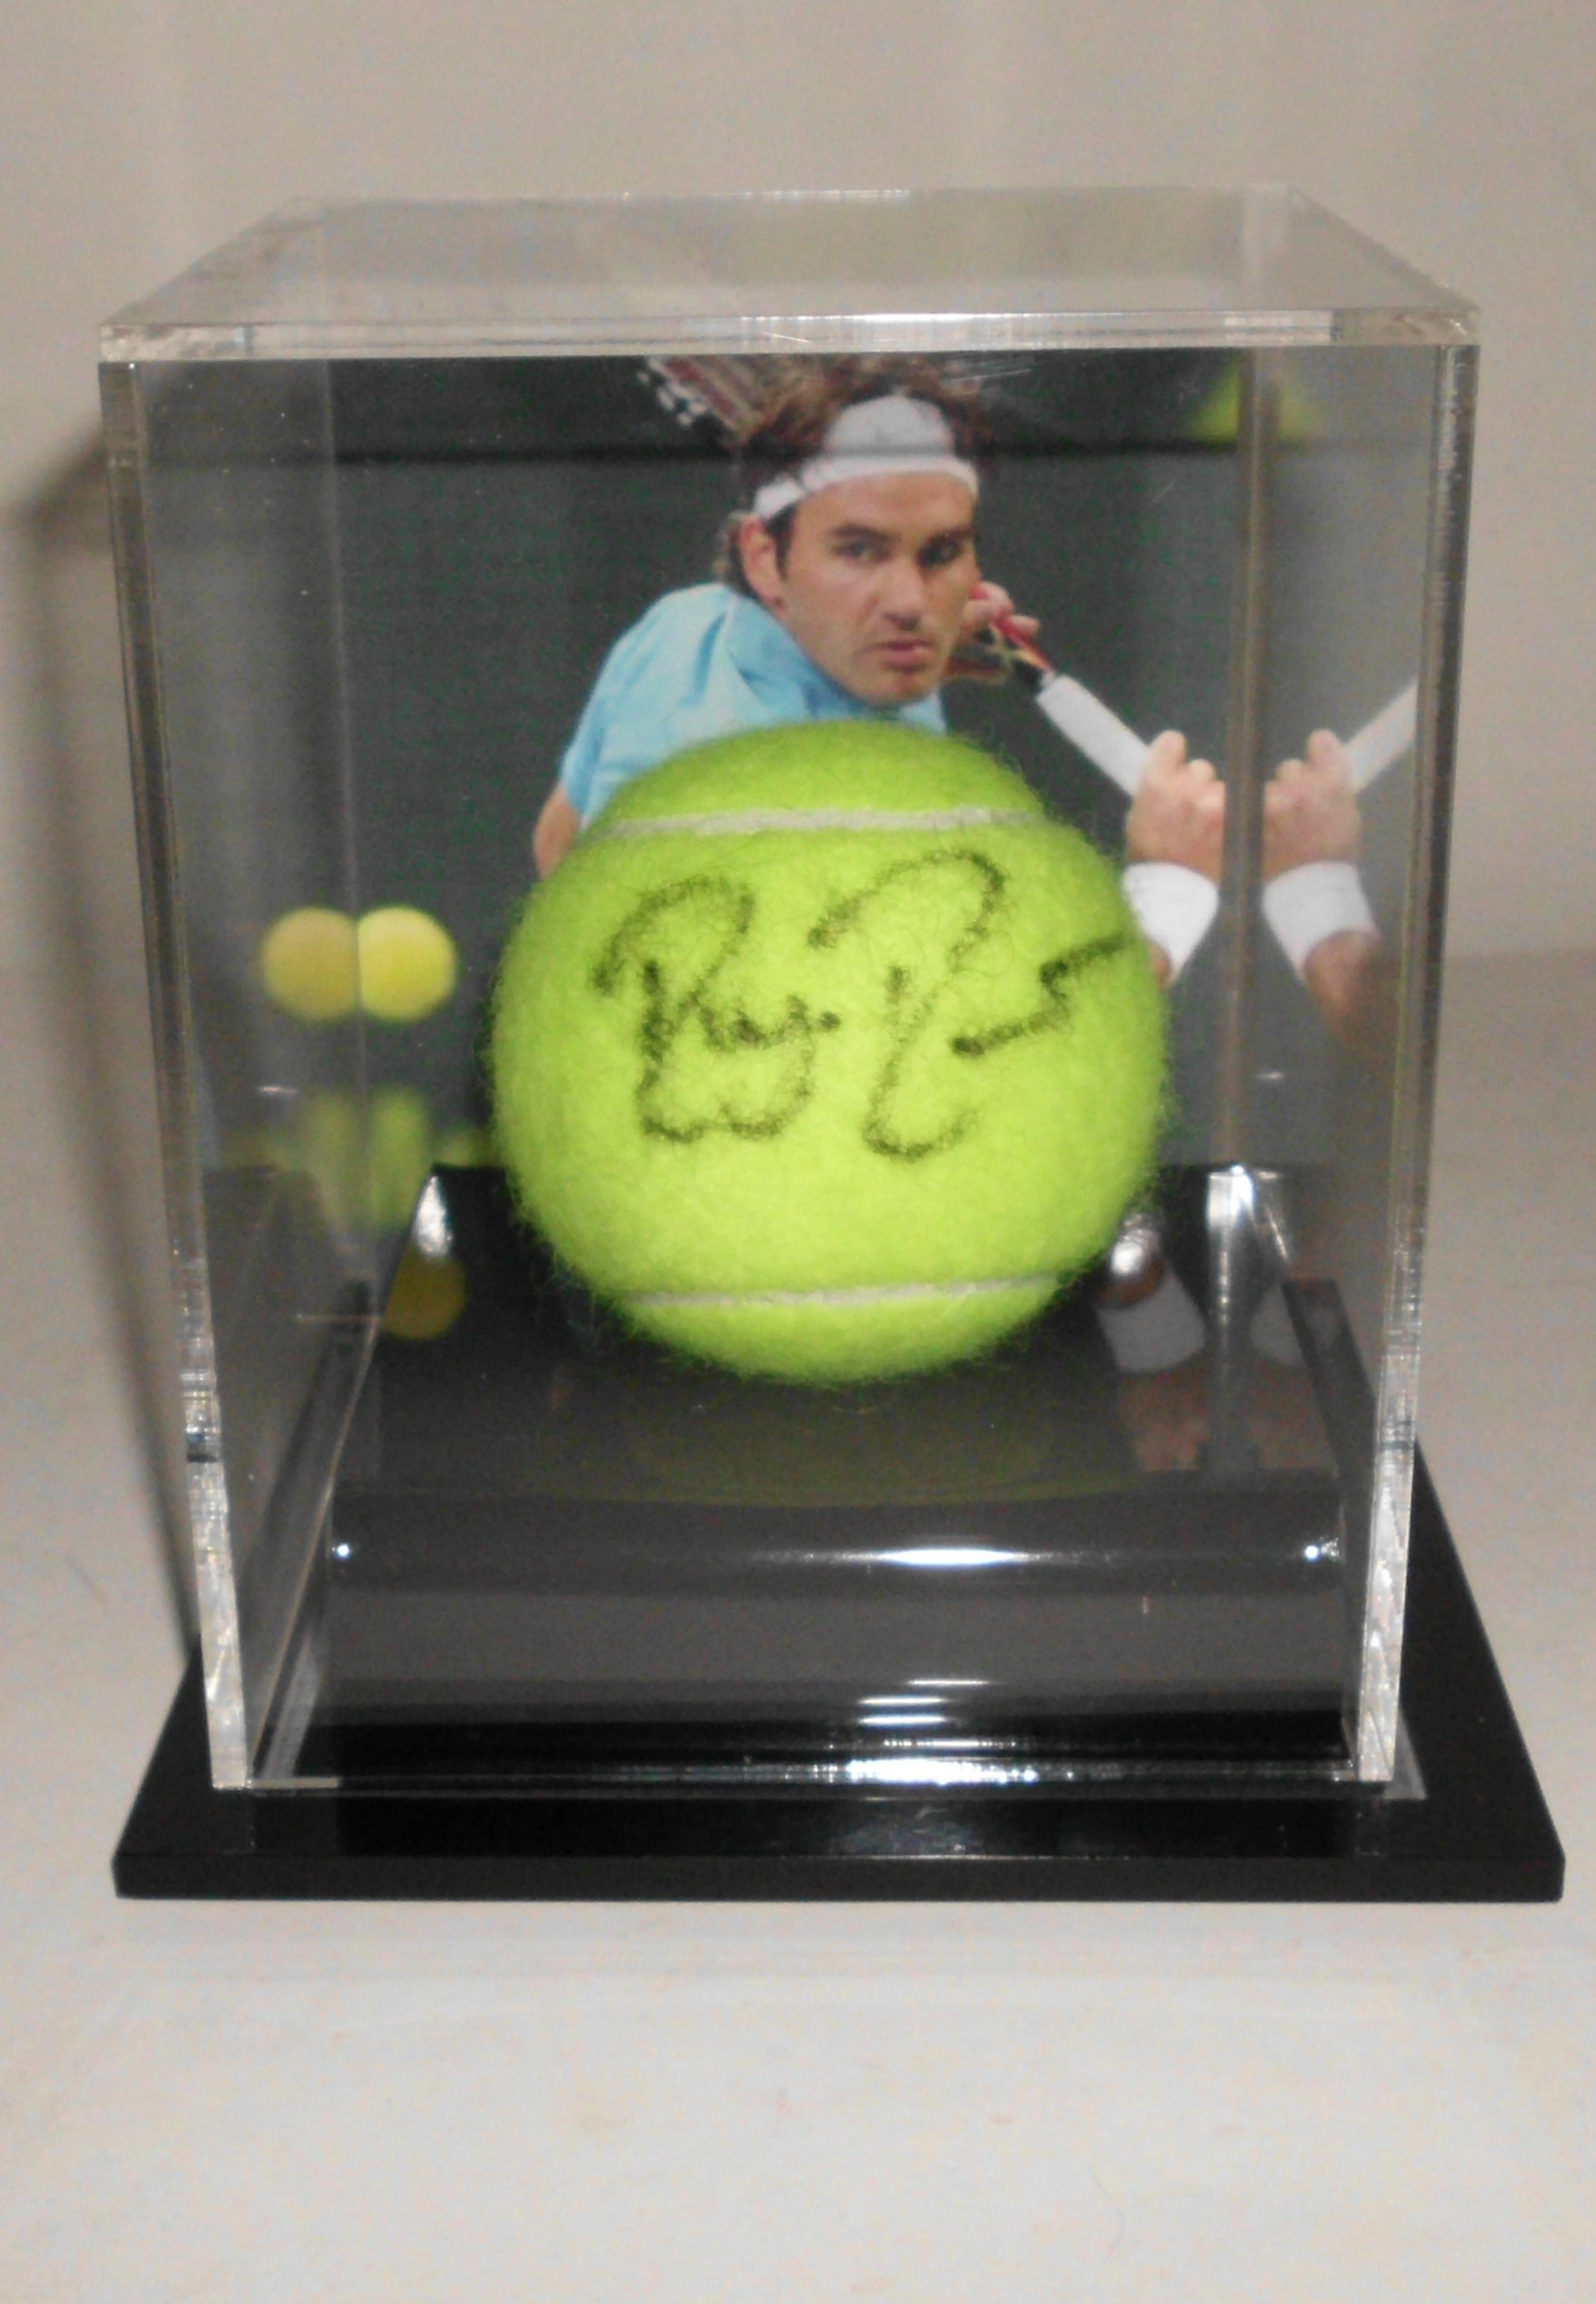 Roger Federer Personally Signed Tennis Ball in Display Cube